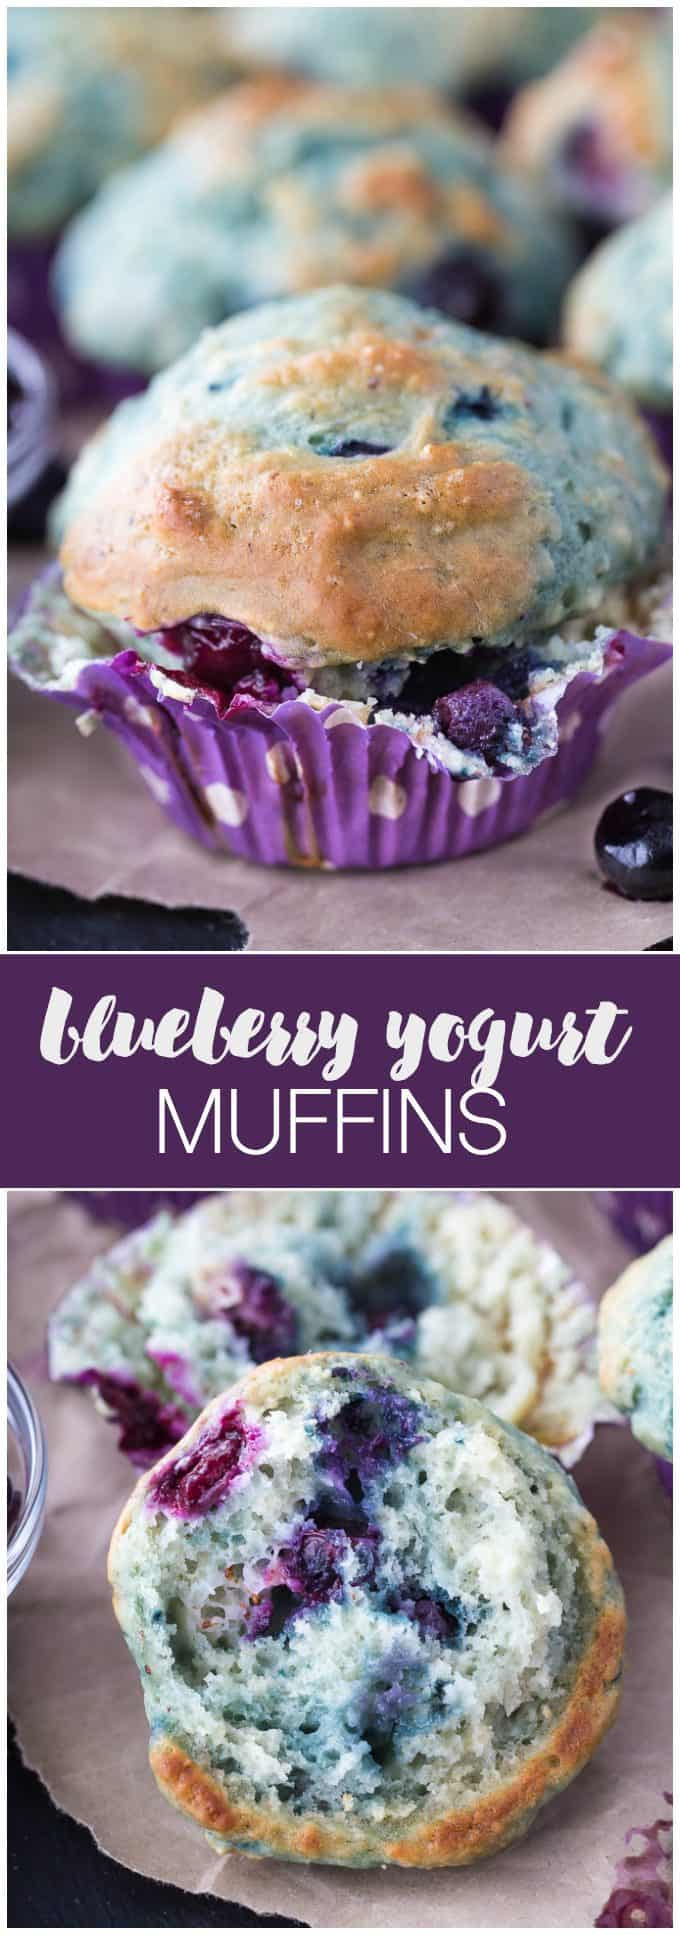 Blueberry Yogurt Muffins - Incredibly moist with sweet blueberries sprinkled throughout!